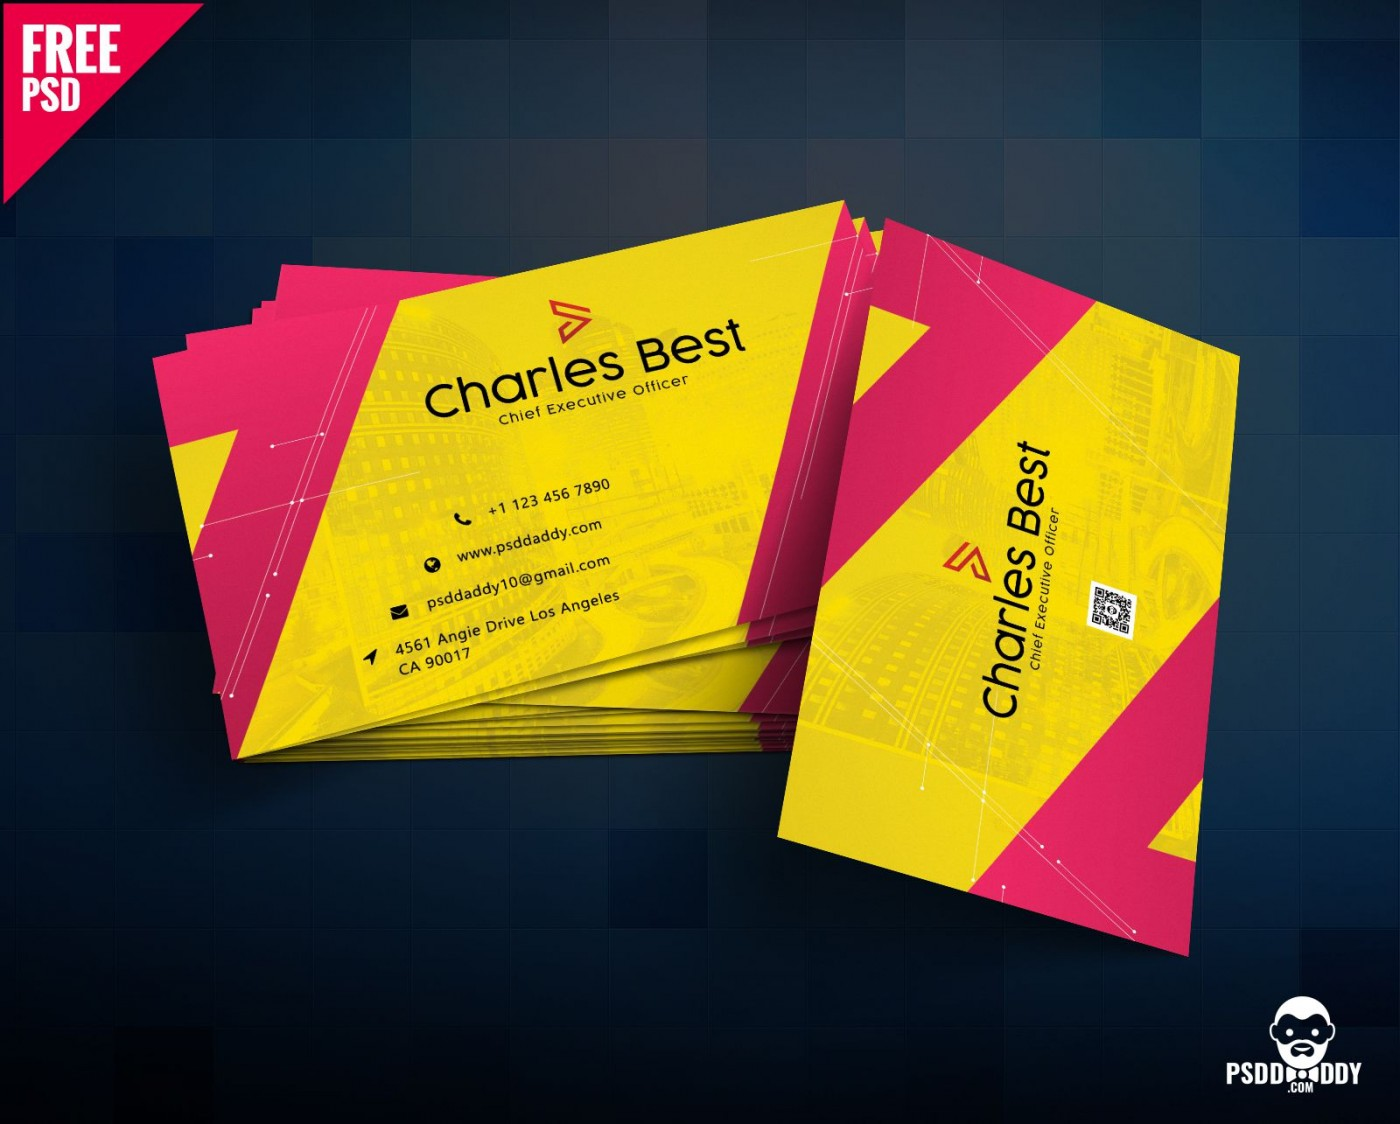 006 Top Psd Busines Card Template High Resolution  With Bleed And Crop Mark Vistaprint Free1400